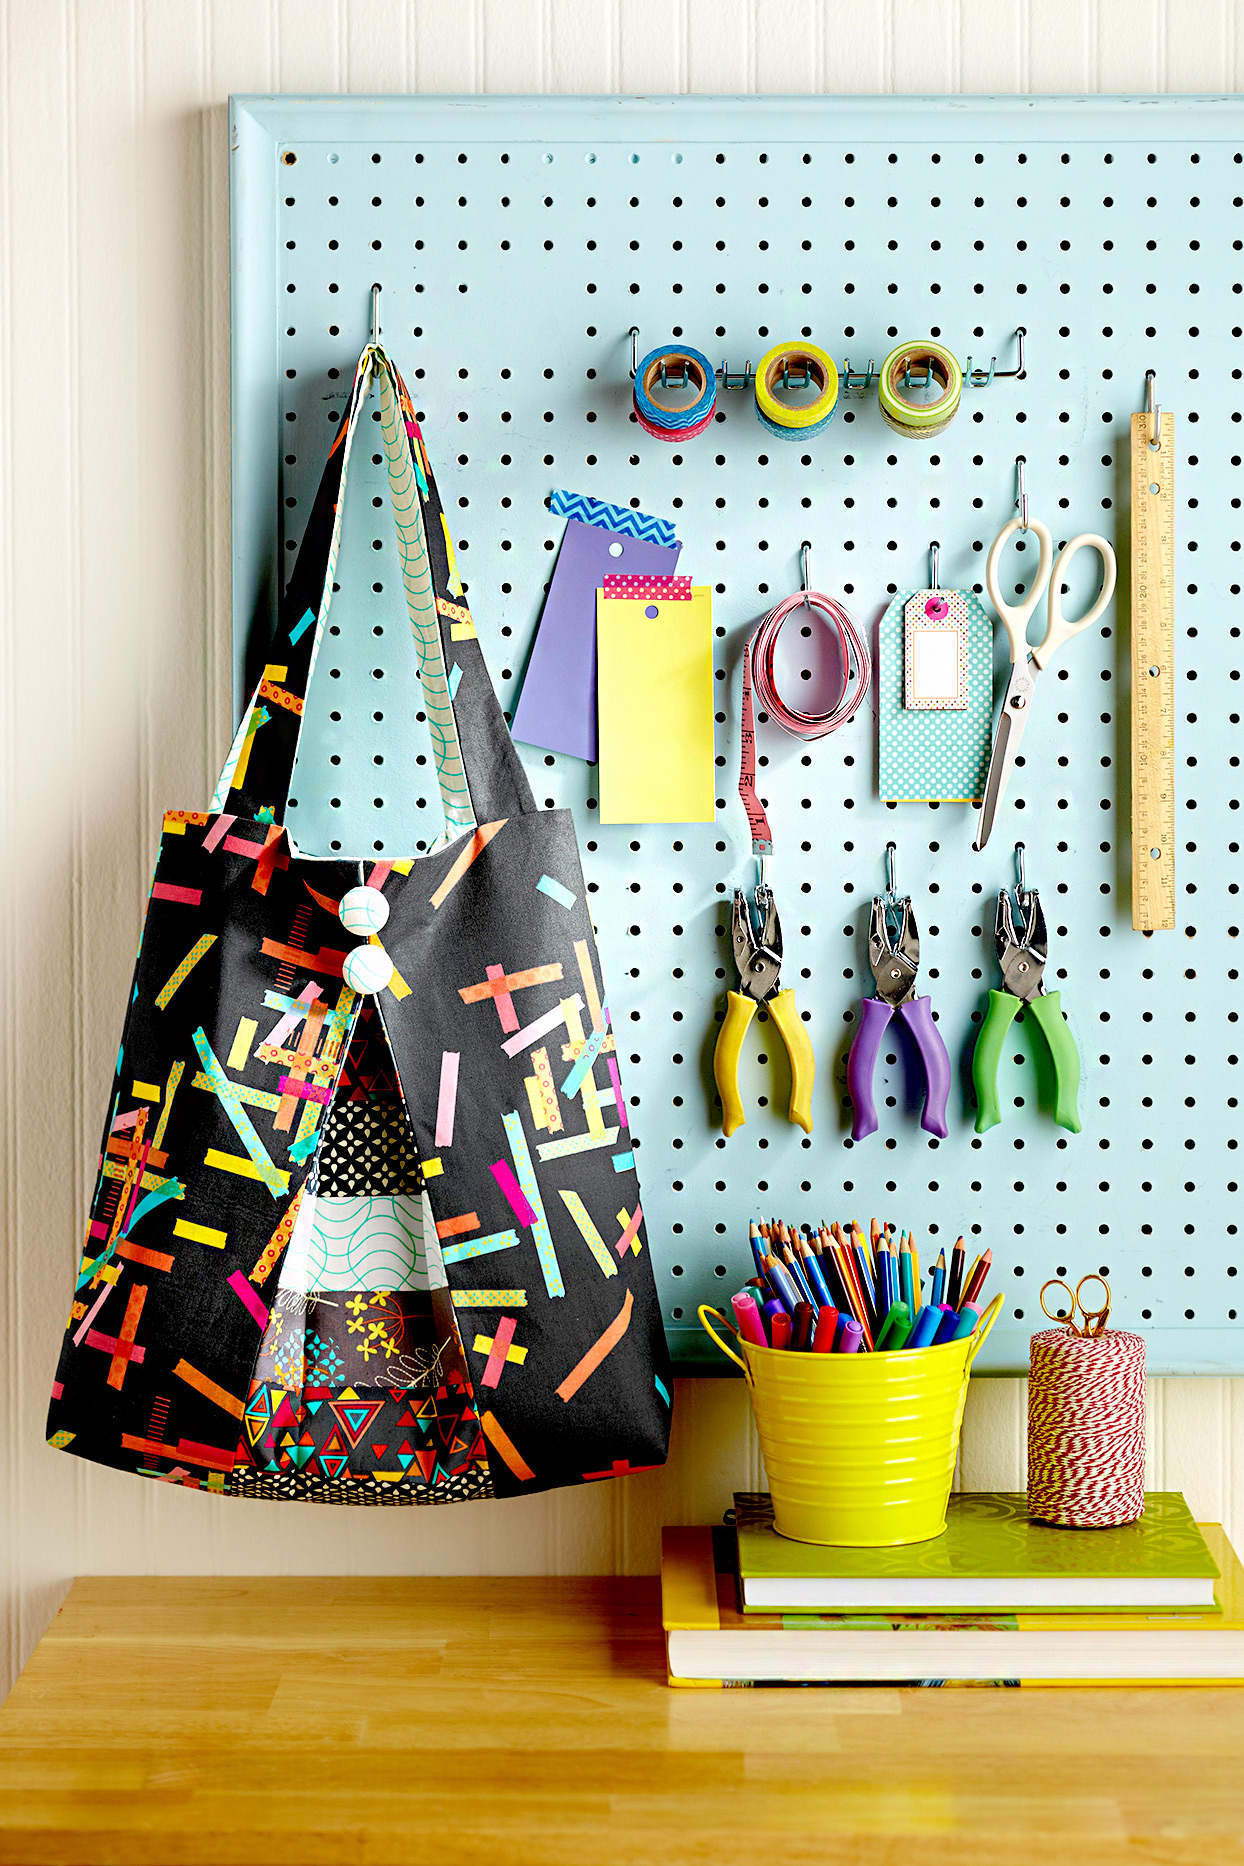 Pegboard with tools and bag